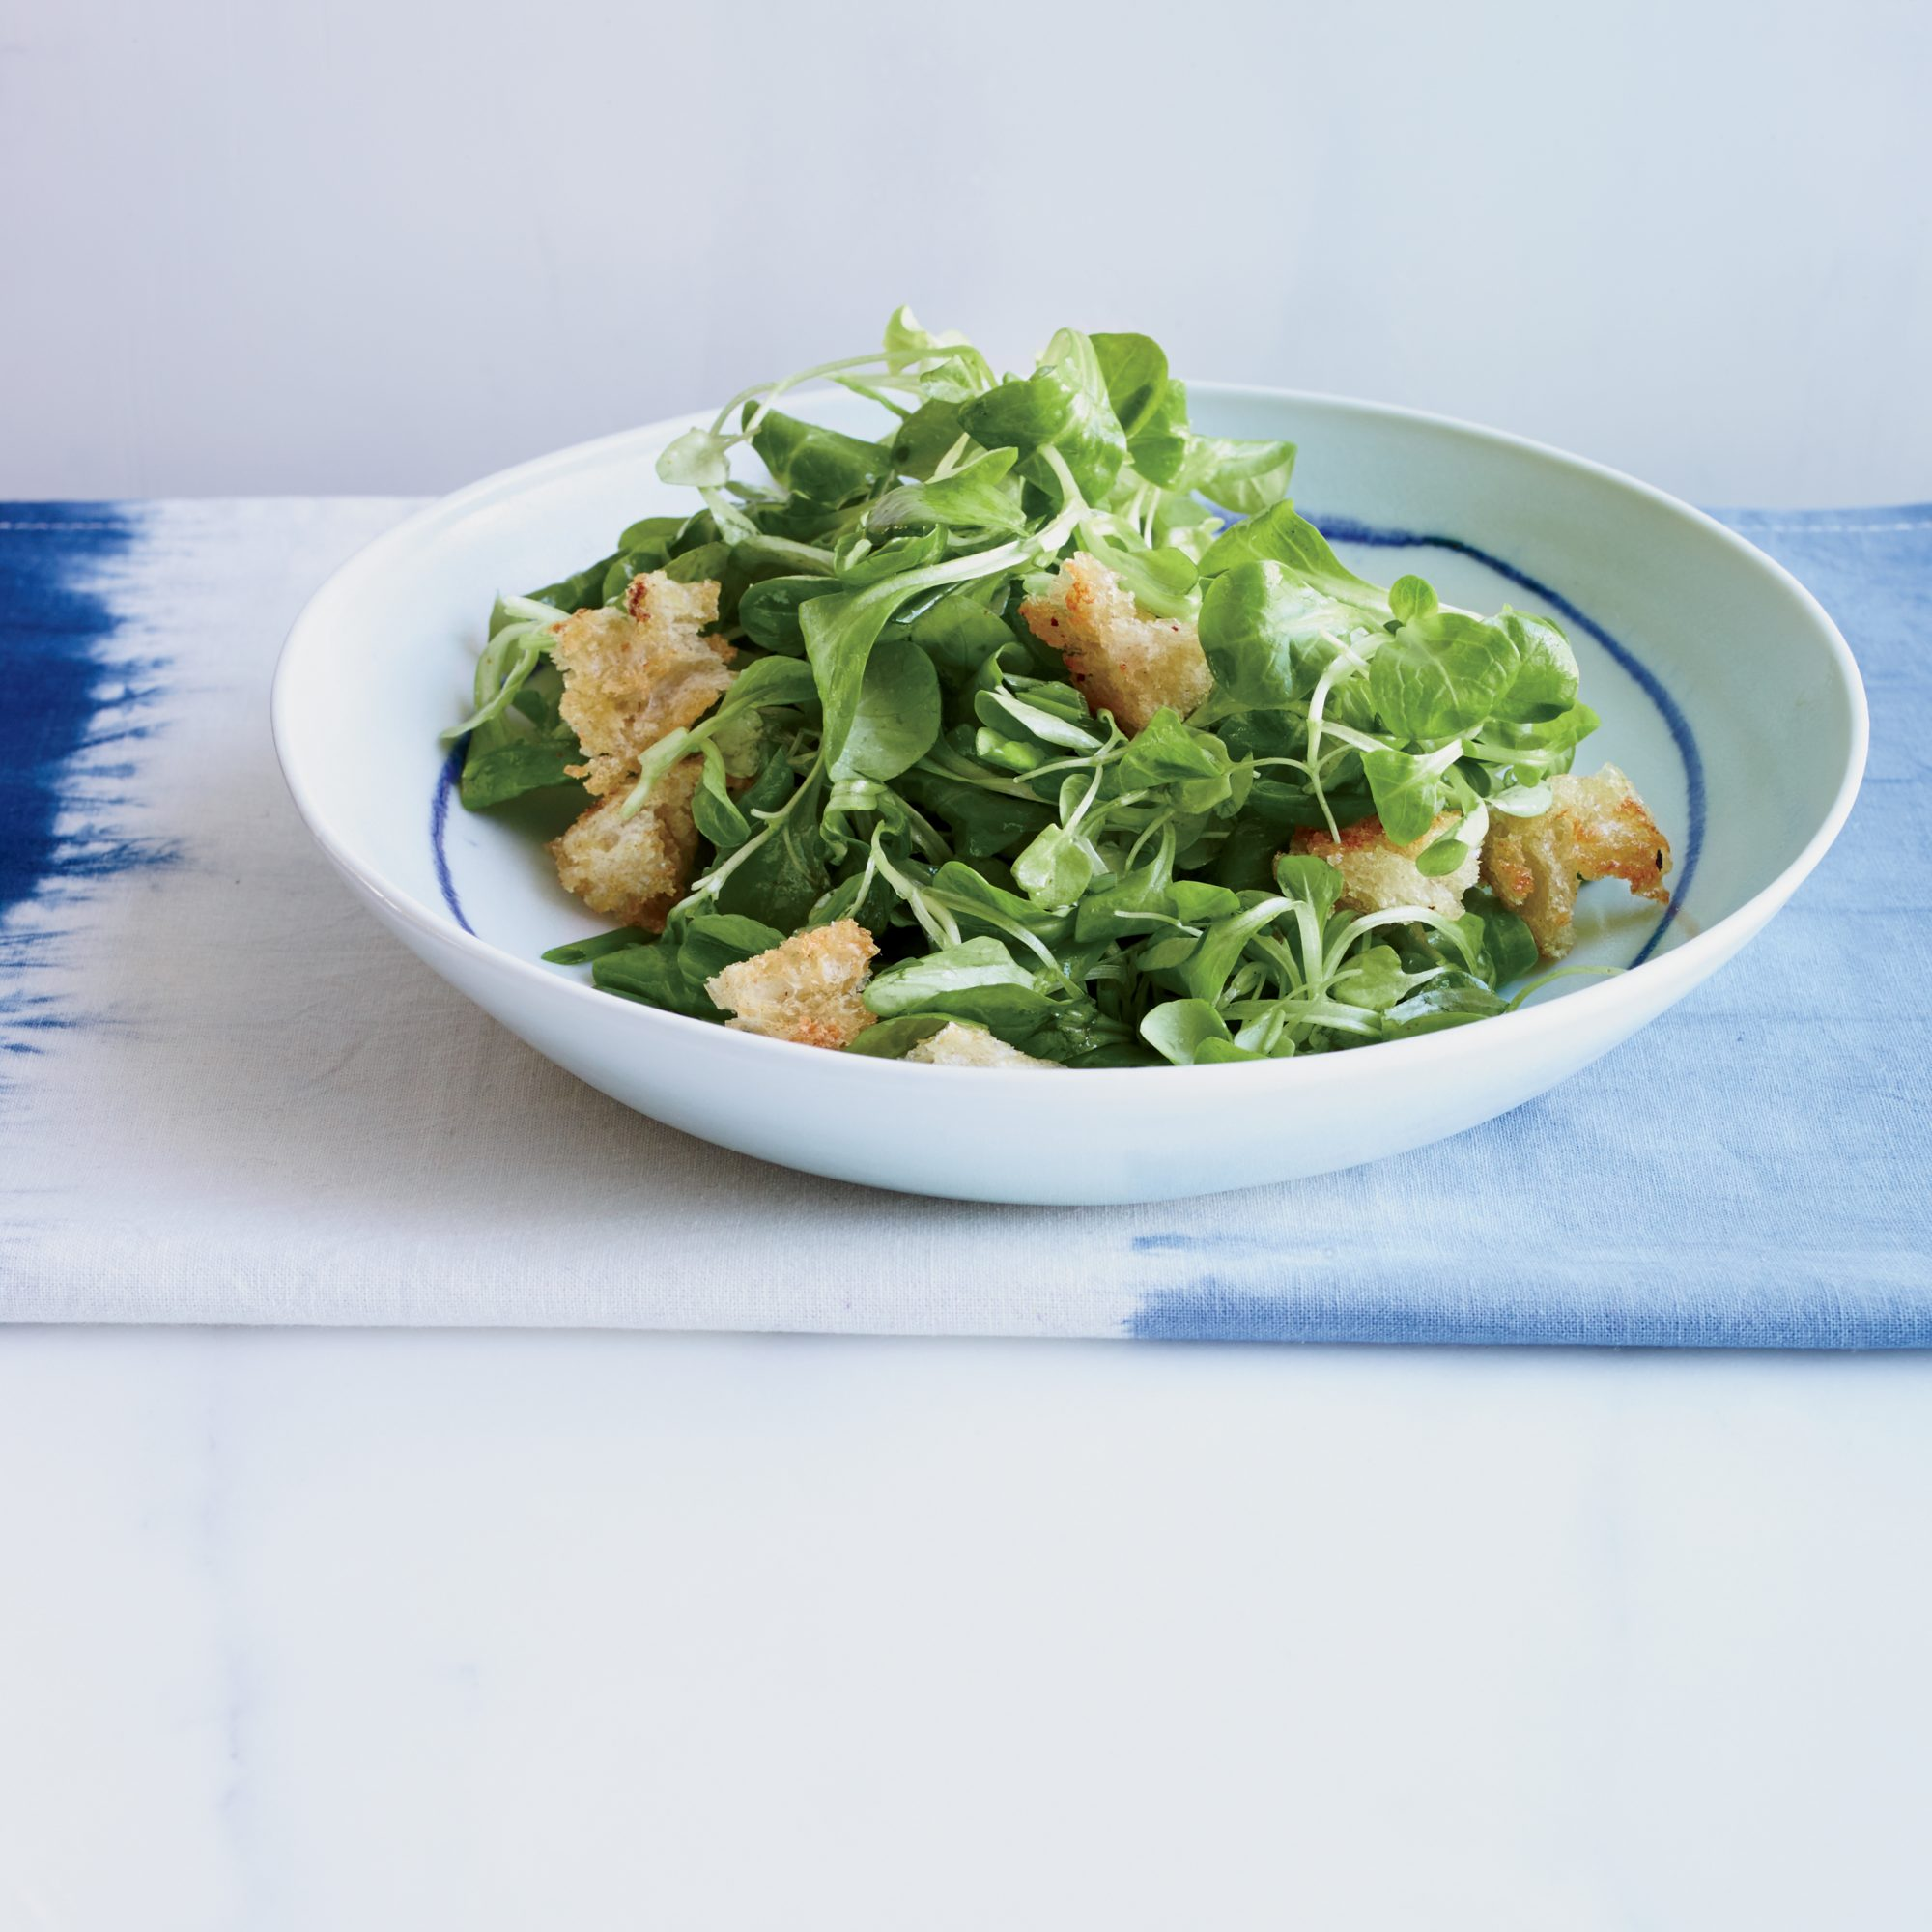 Mâche Salad with Curry Vinaigrette